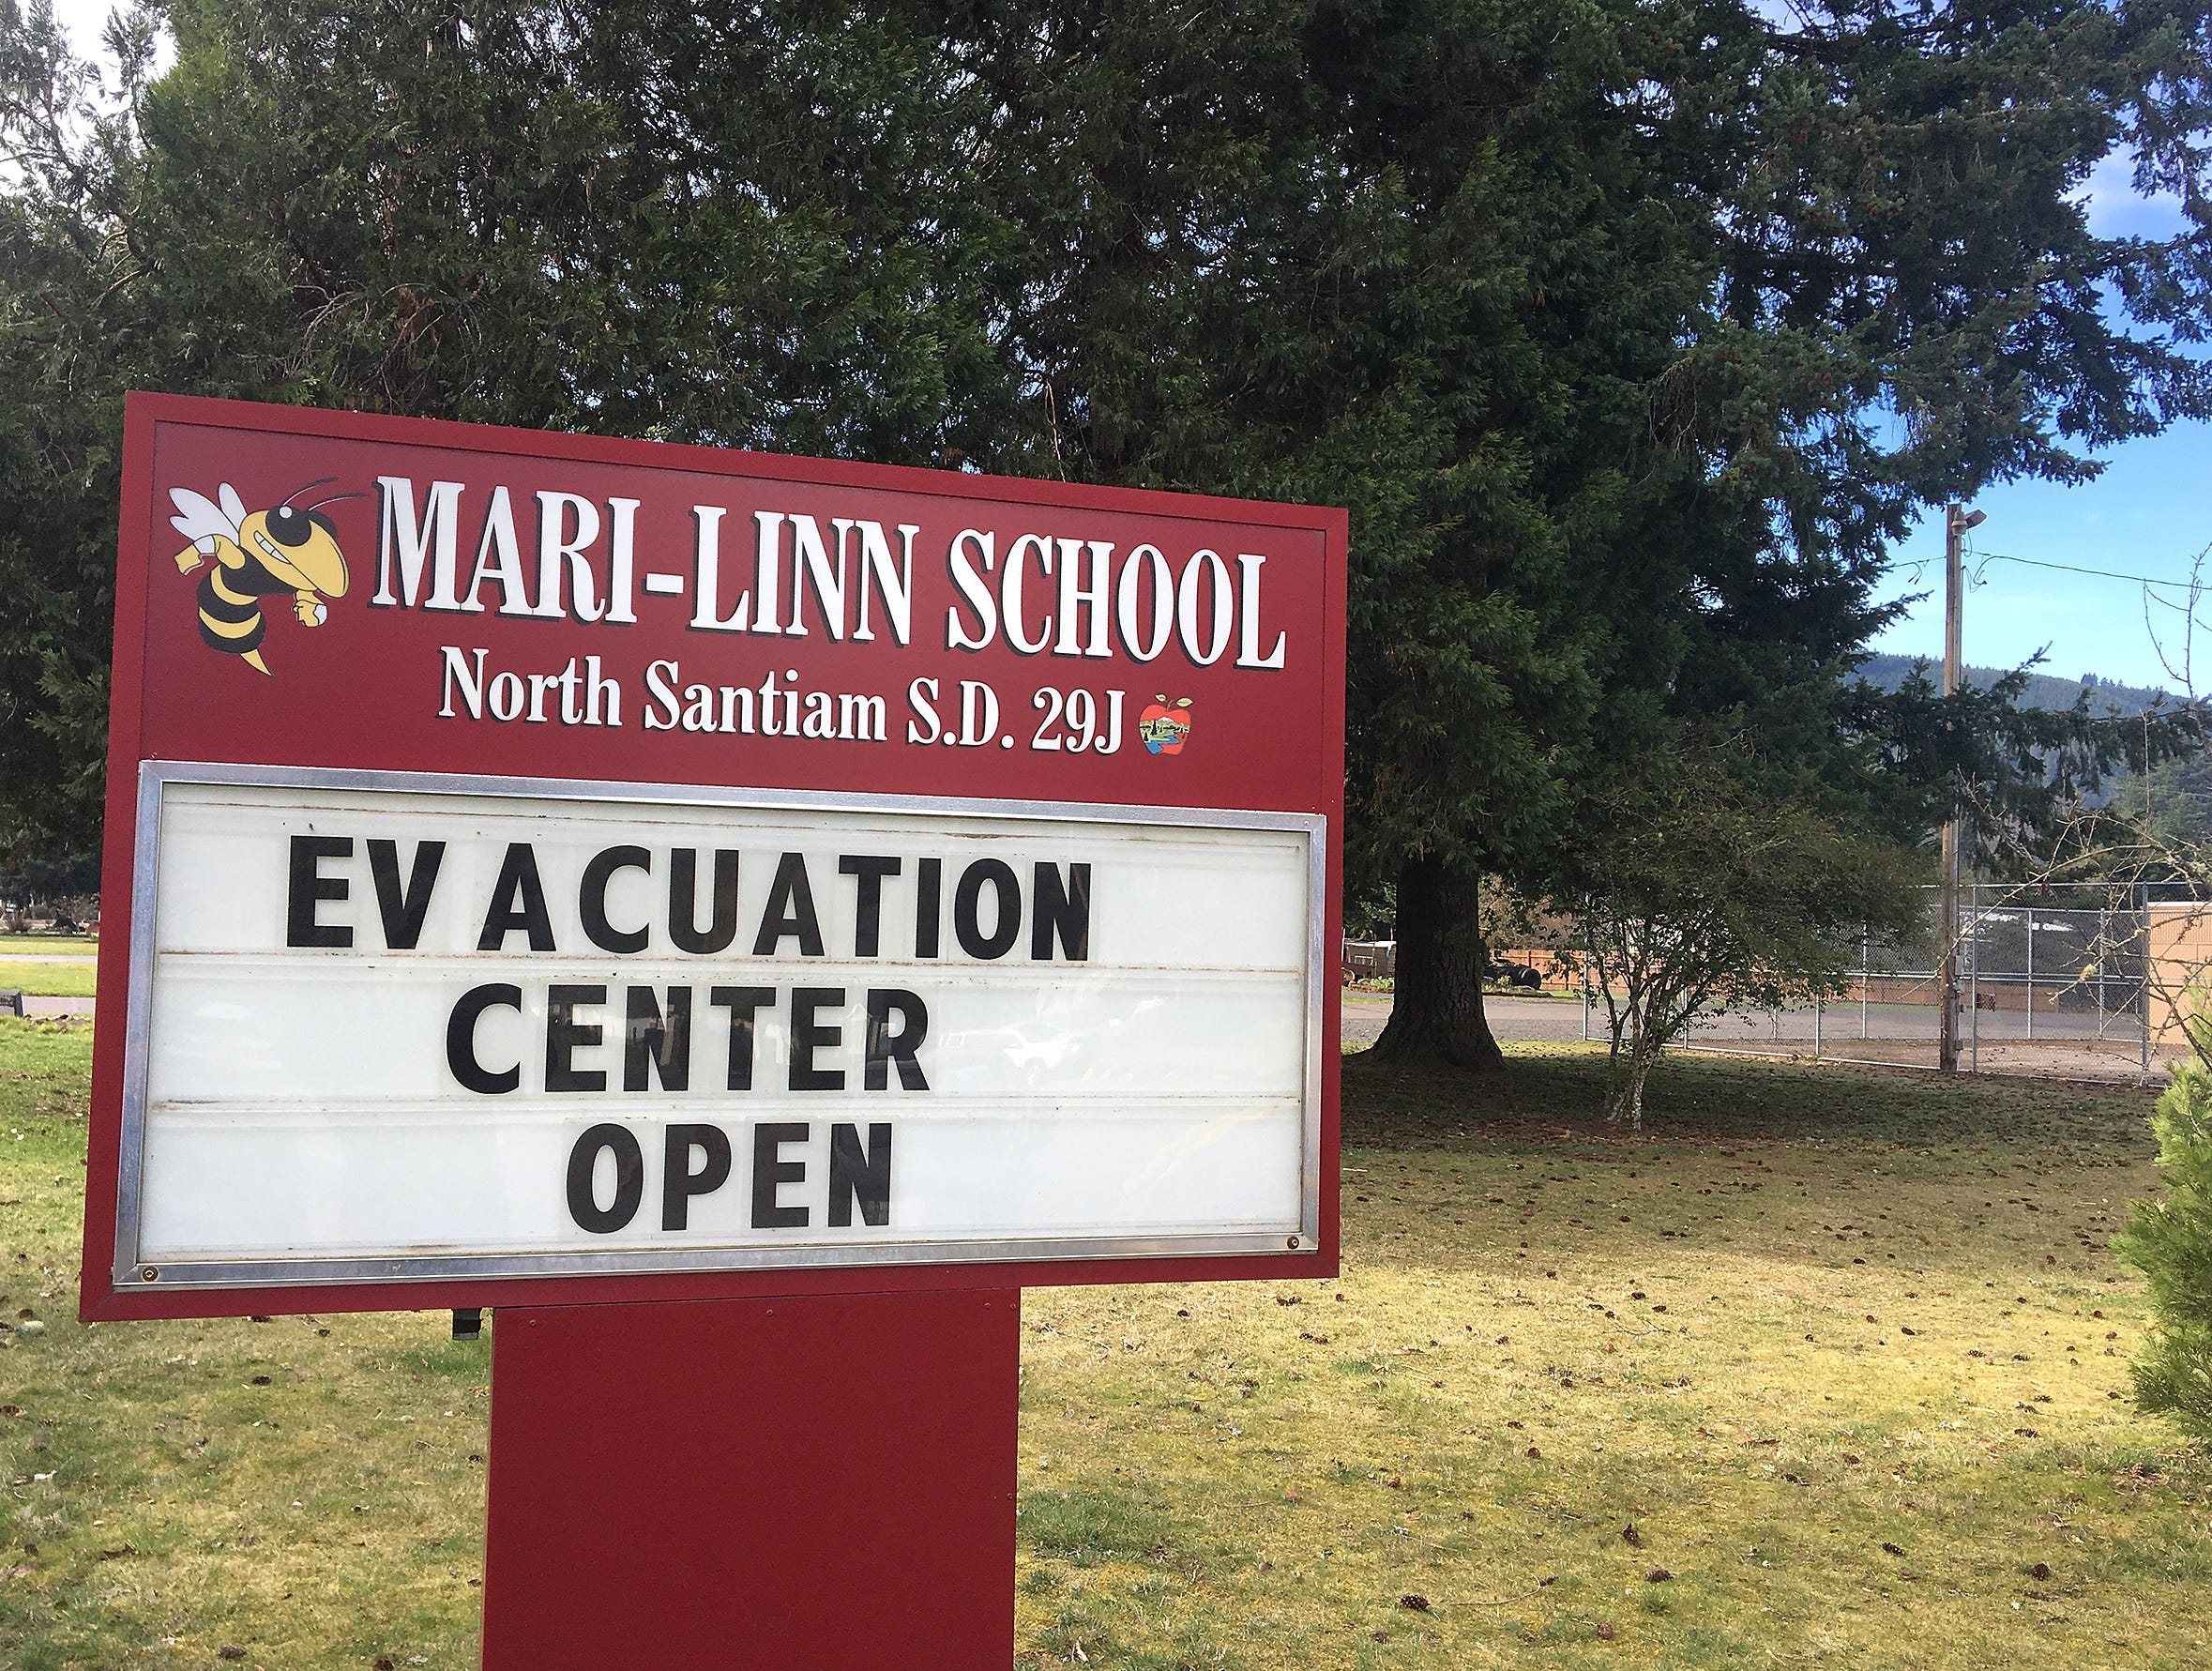 Classes were cancelled Wednesday as the Mari-Linn School becomes an evacuation center after a grass fire that started Tuesday afternoon near Lyons caused evacuations.